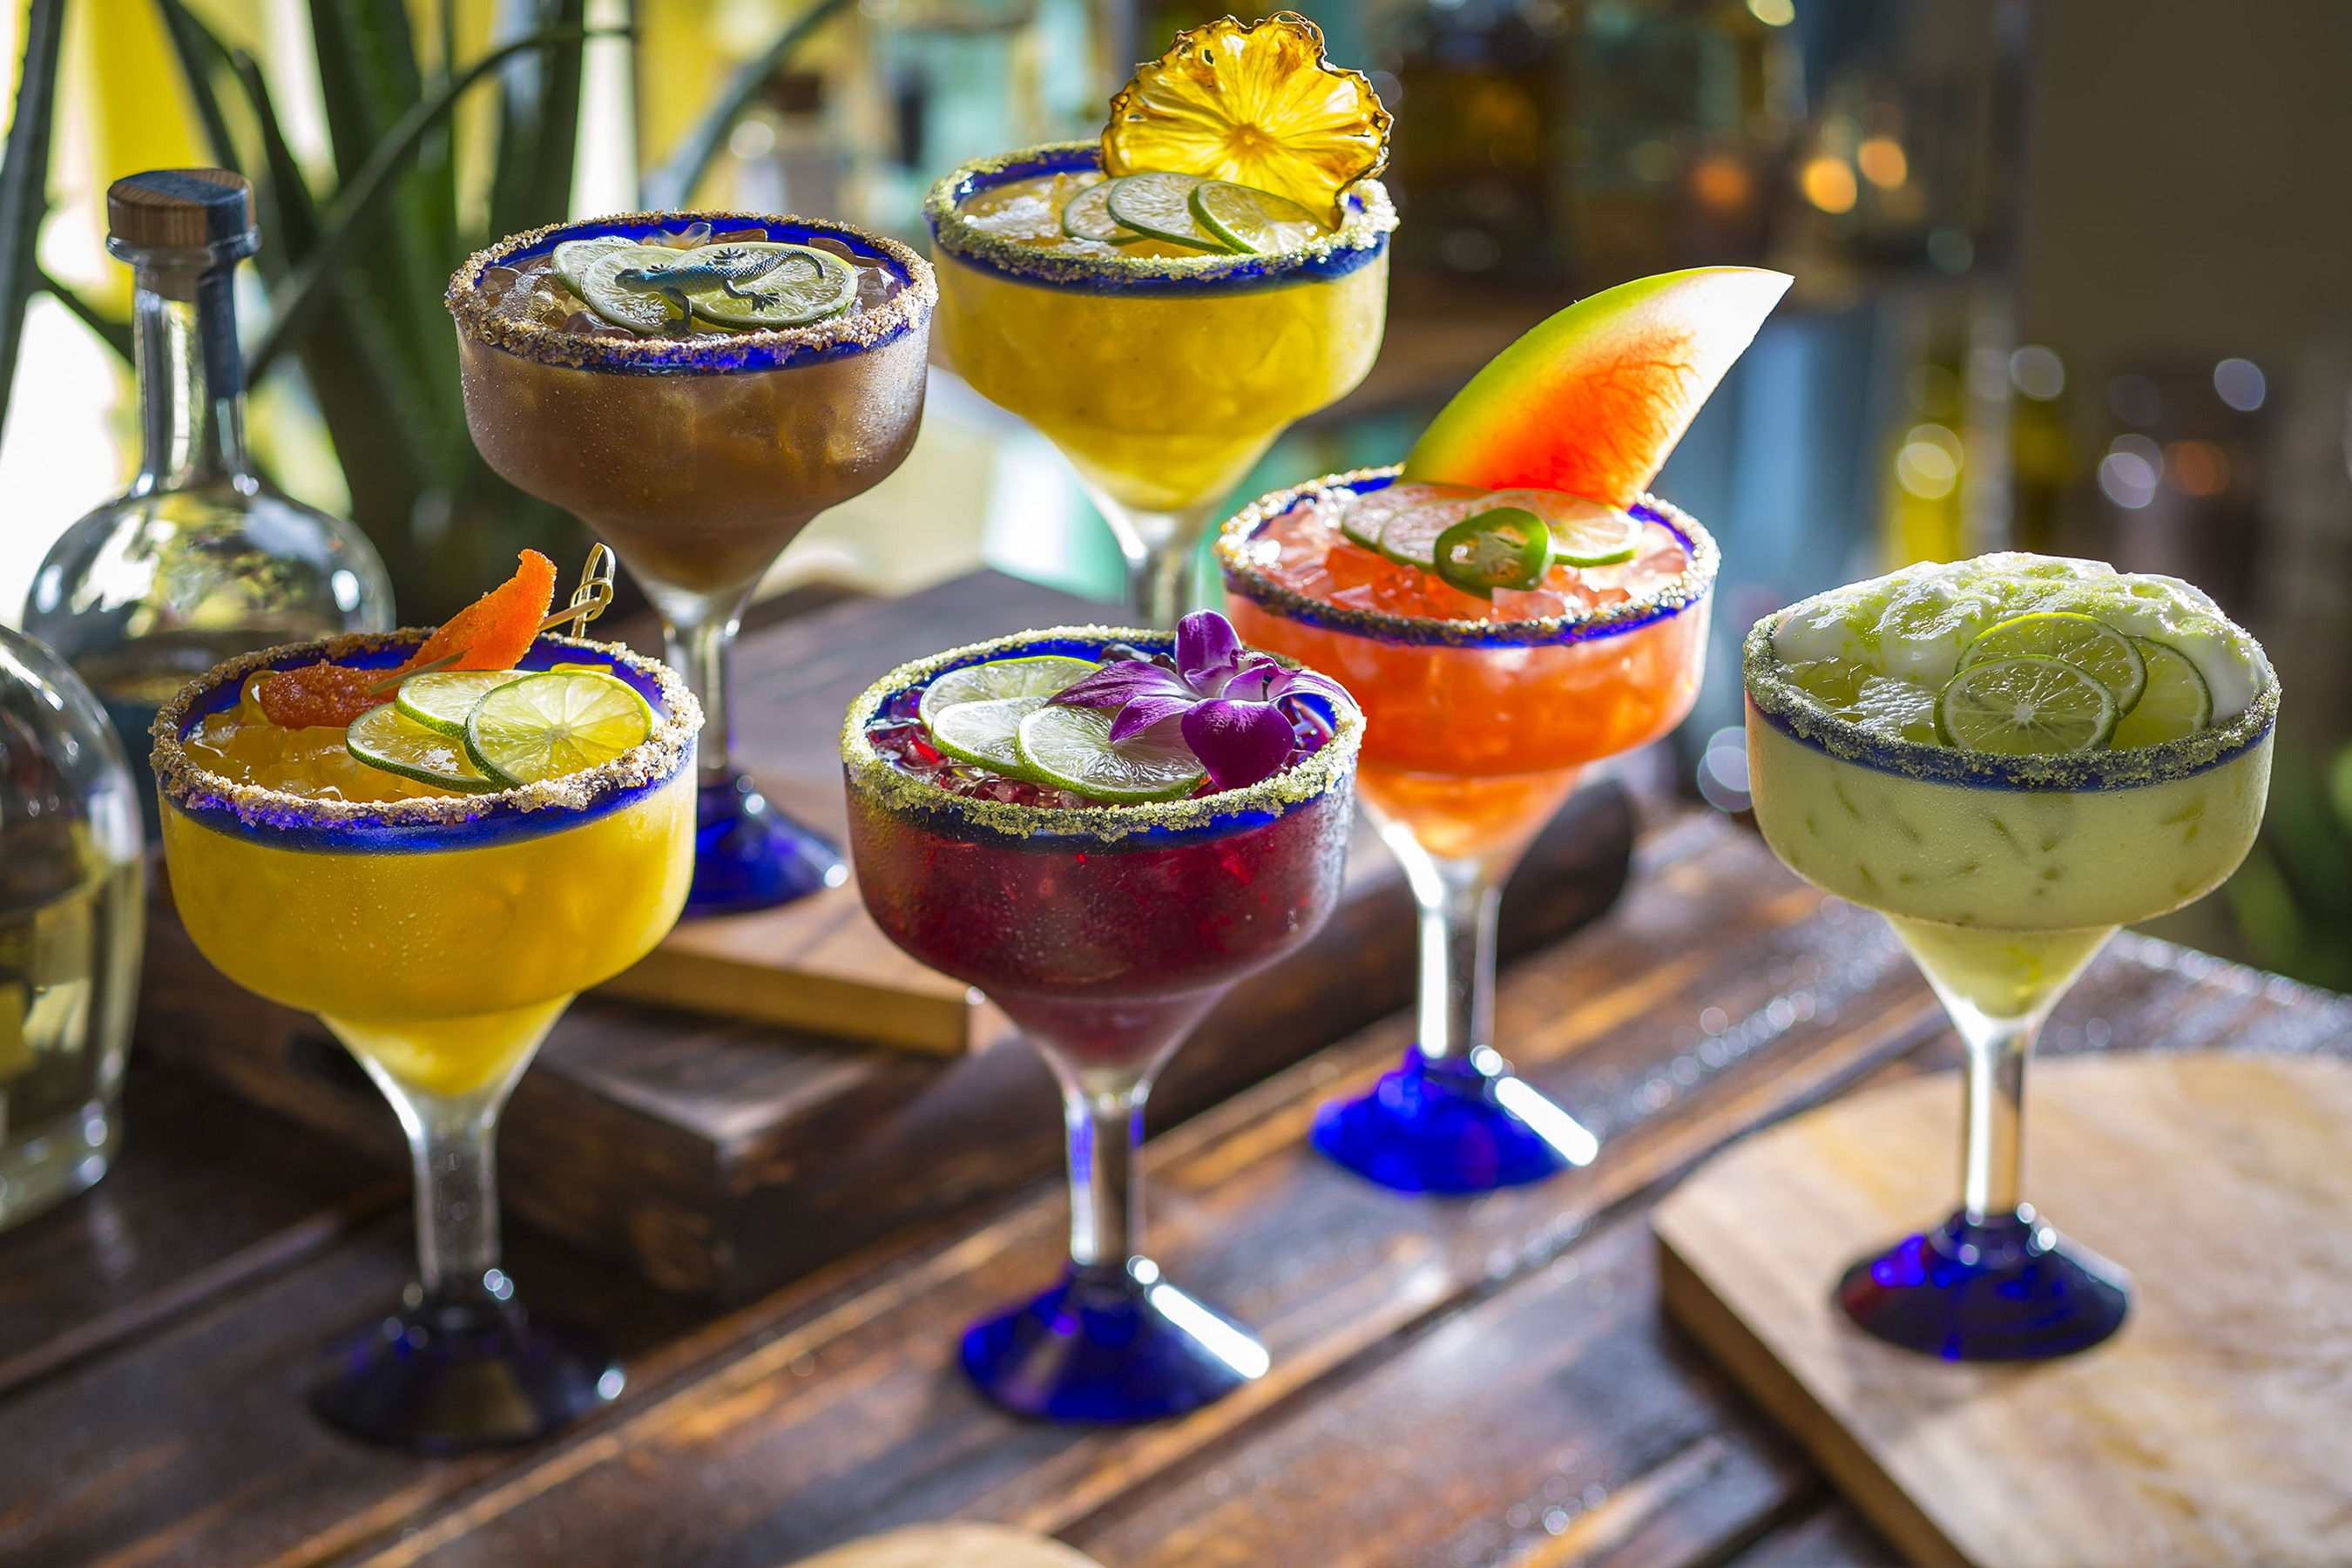 Six new handcrafted margaritas of sassy and spicy goodness! – Tamarind Margarita, Grilled Pineapple, MangoRita, Hibiscus, Watermelon Jalapeno and Key Lime Pie